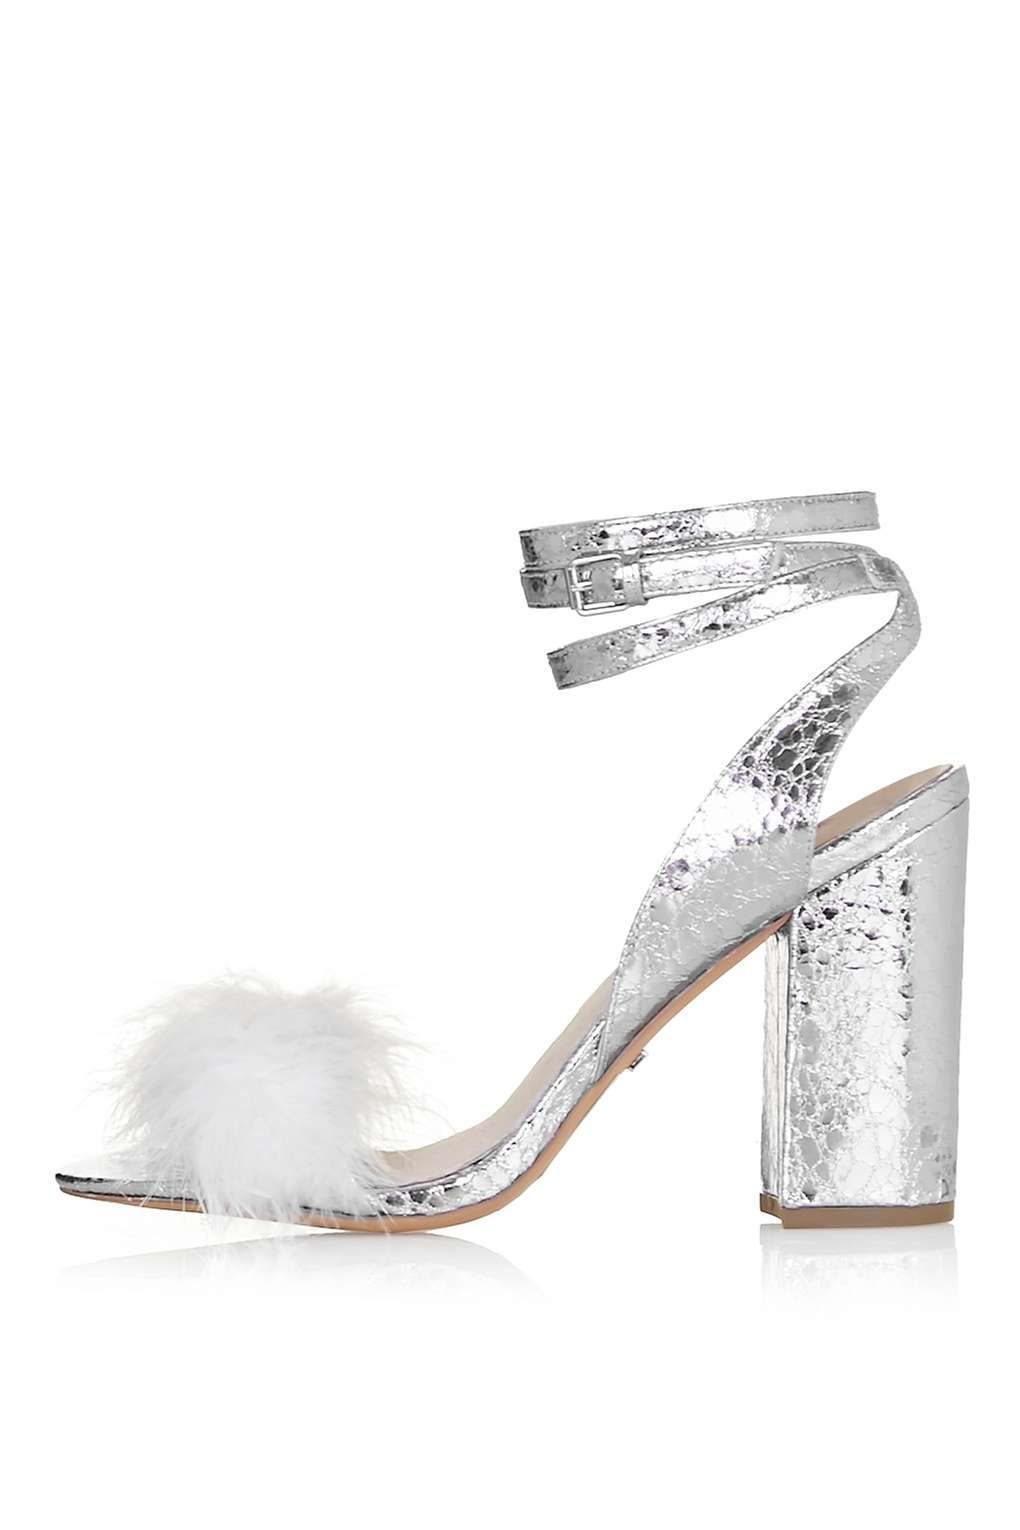 8a390c90eb Carousel Image 0 Silver Heels, Metallic Heels, Party Shoes, Heeled Mules,  Heeled